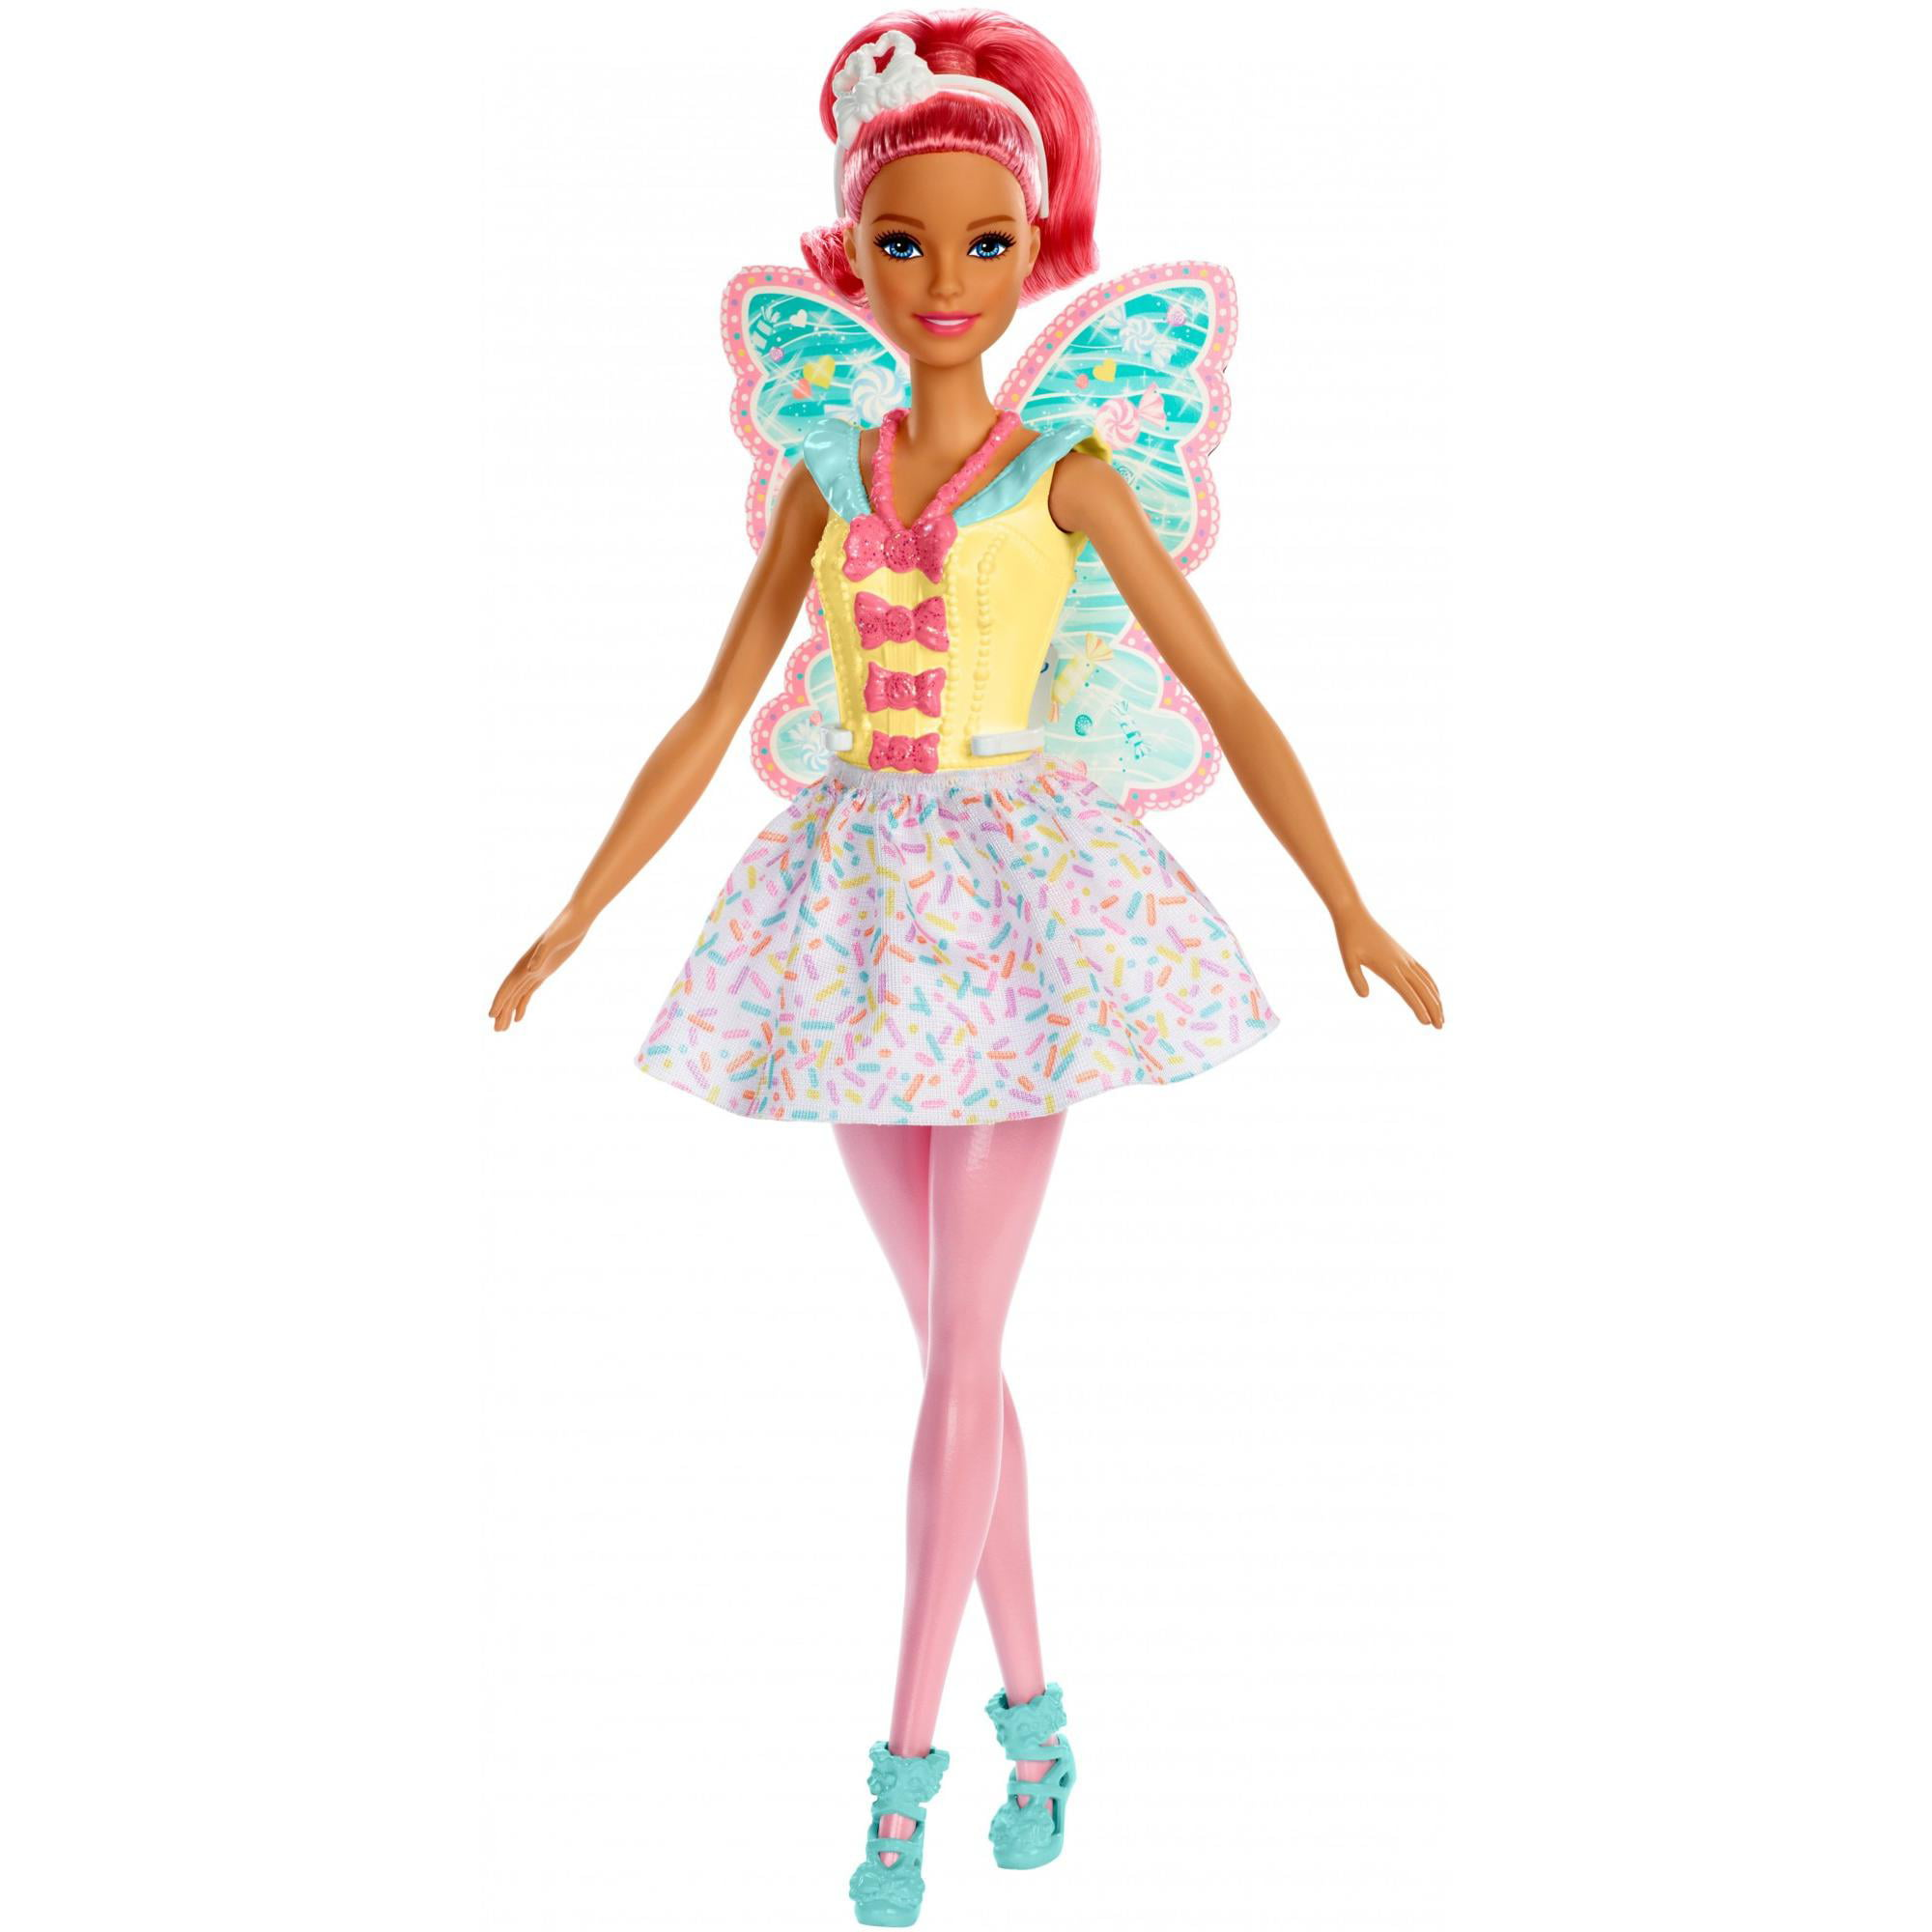 Barbie Dreamtopia Fairy Doll, Pink Hair & Candy-Decorated Wings by Mattel